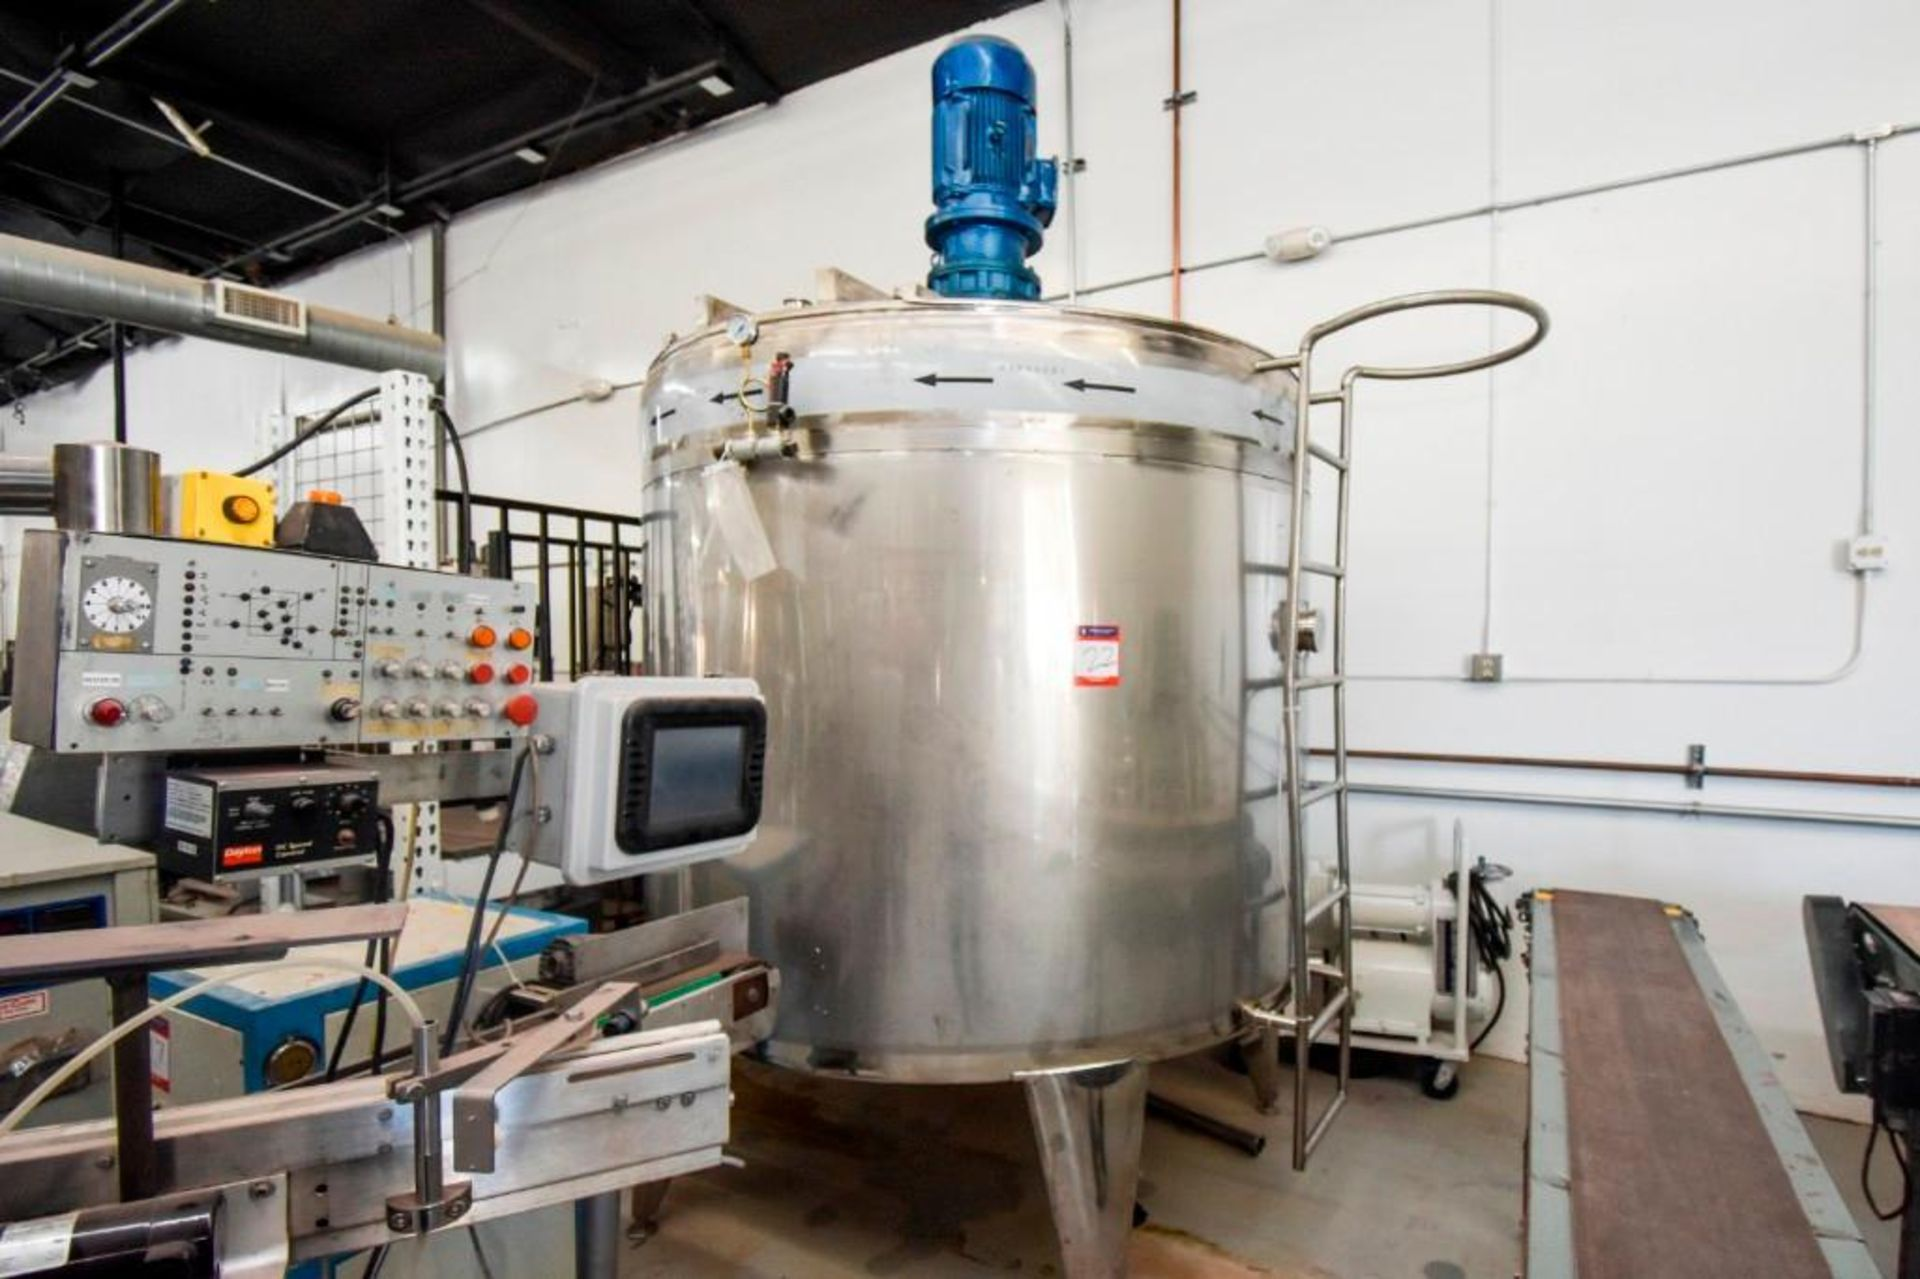 Large Jacketed Mixing Tank 1000 Gallon - Image 2 of 16